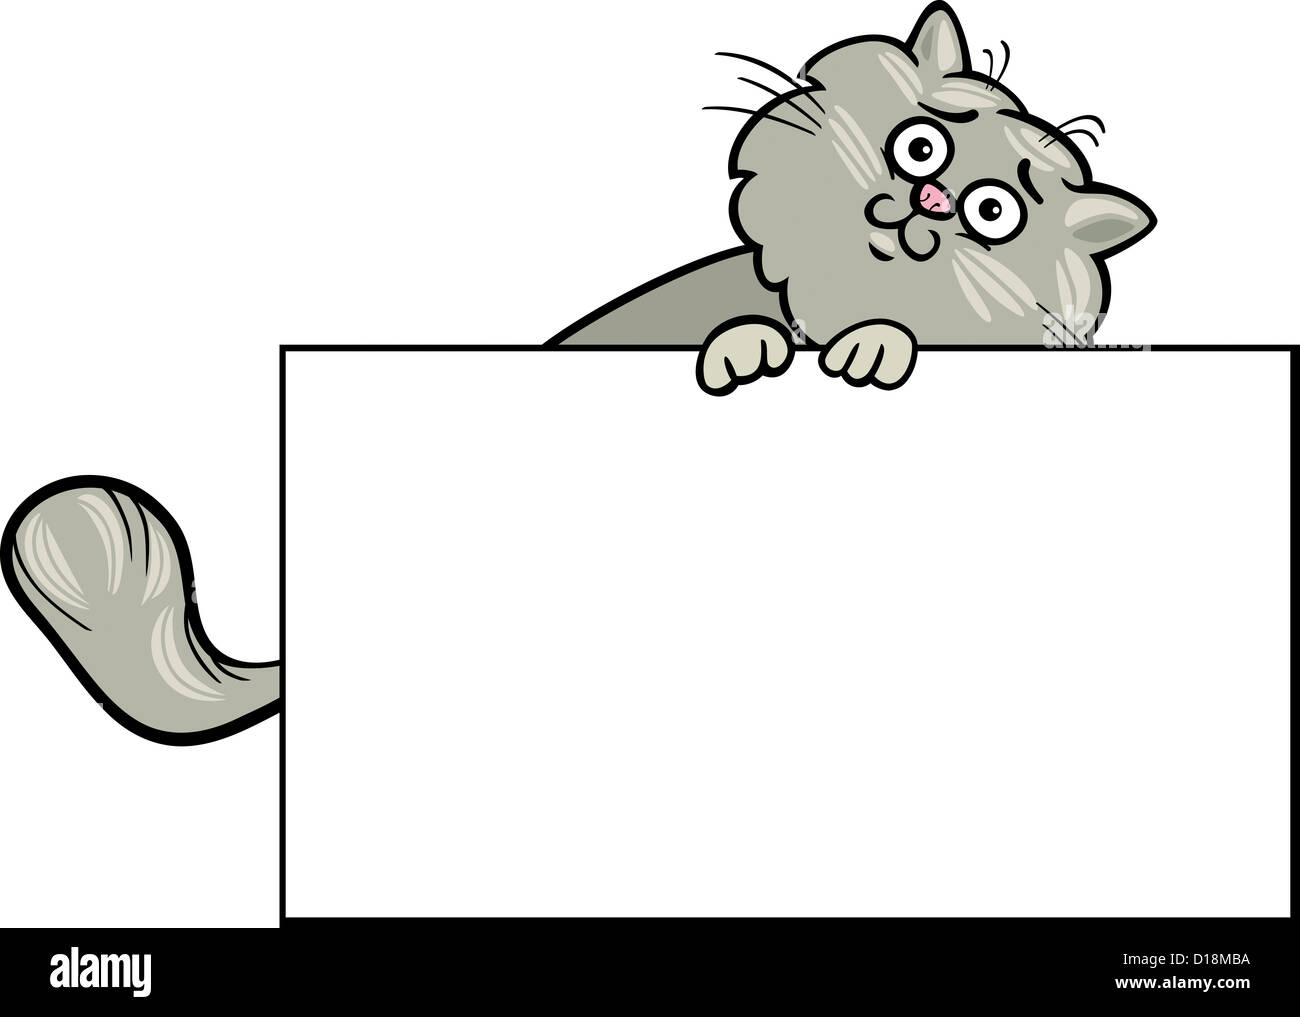 Cartoon Illustration of Funny Fluffy Cat with White Card or Board ...